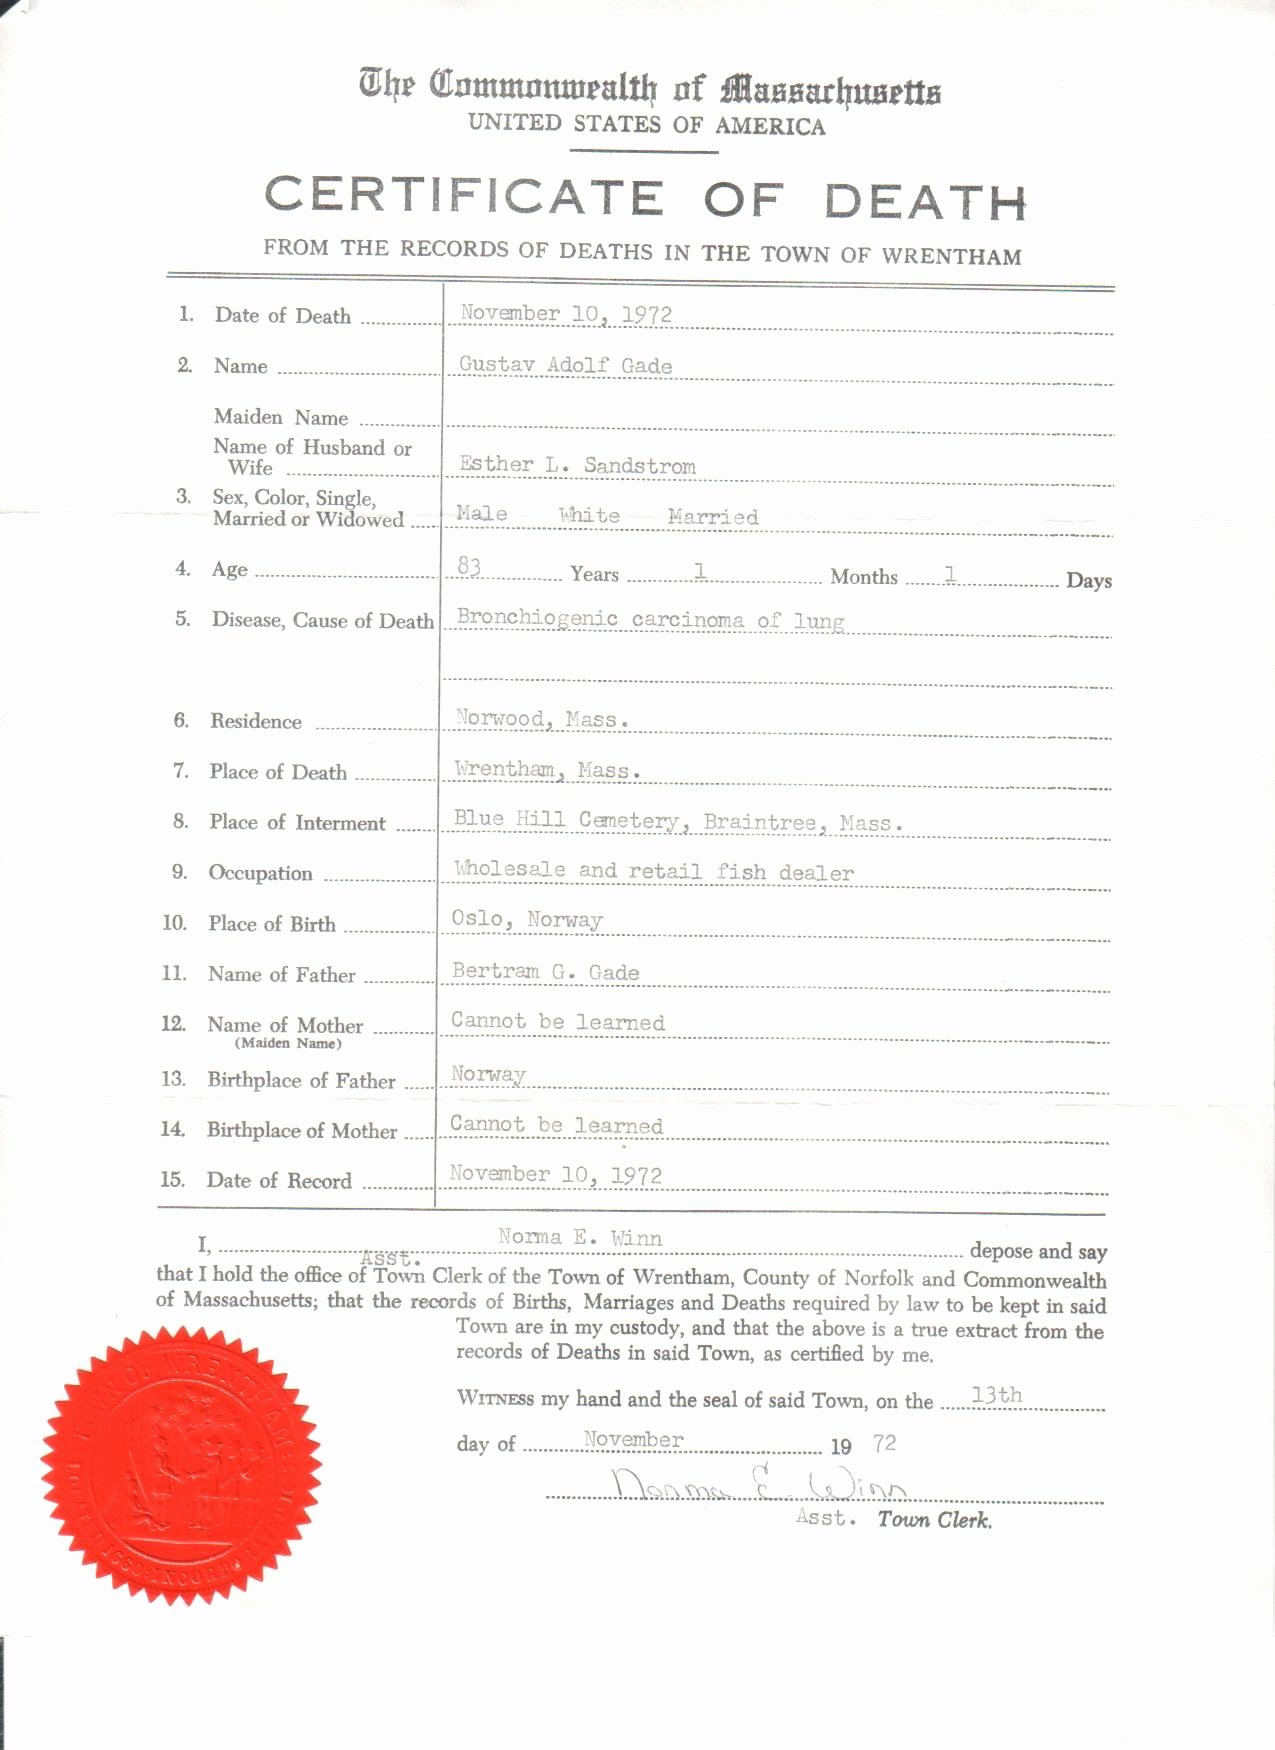 Blank Death Certificate Template Lovely Wood Gade Documents – Relatively Speaking